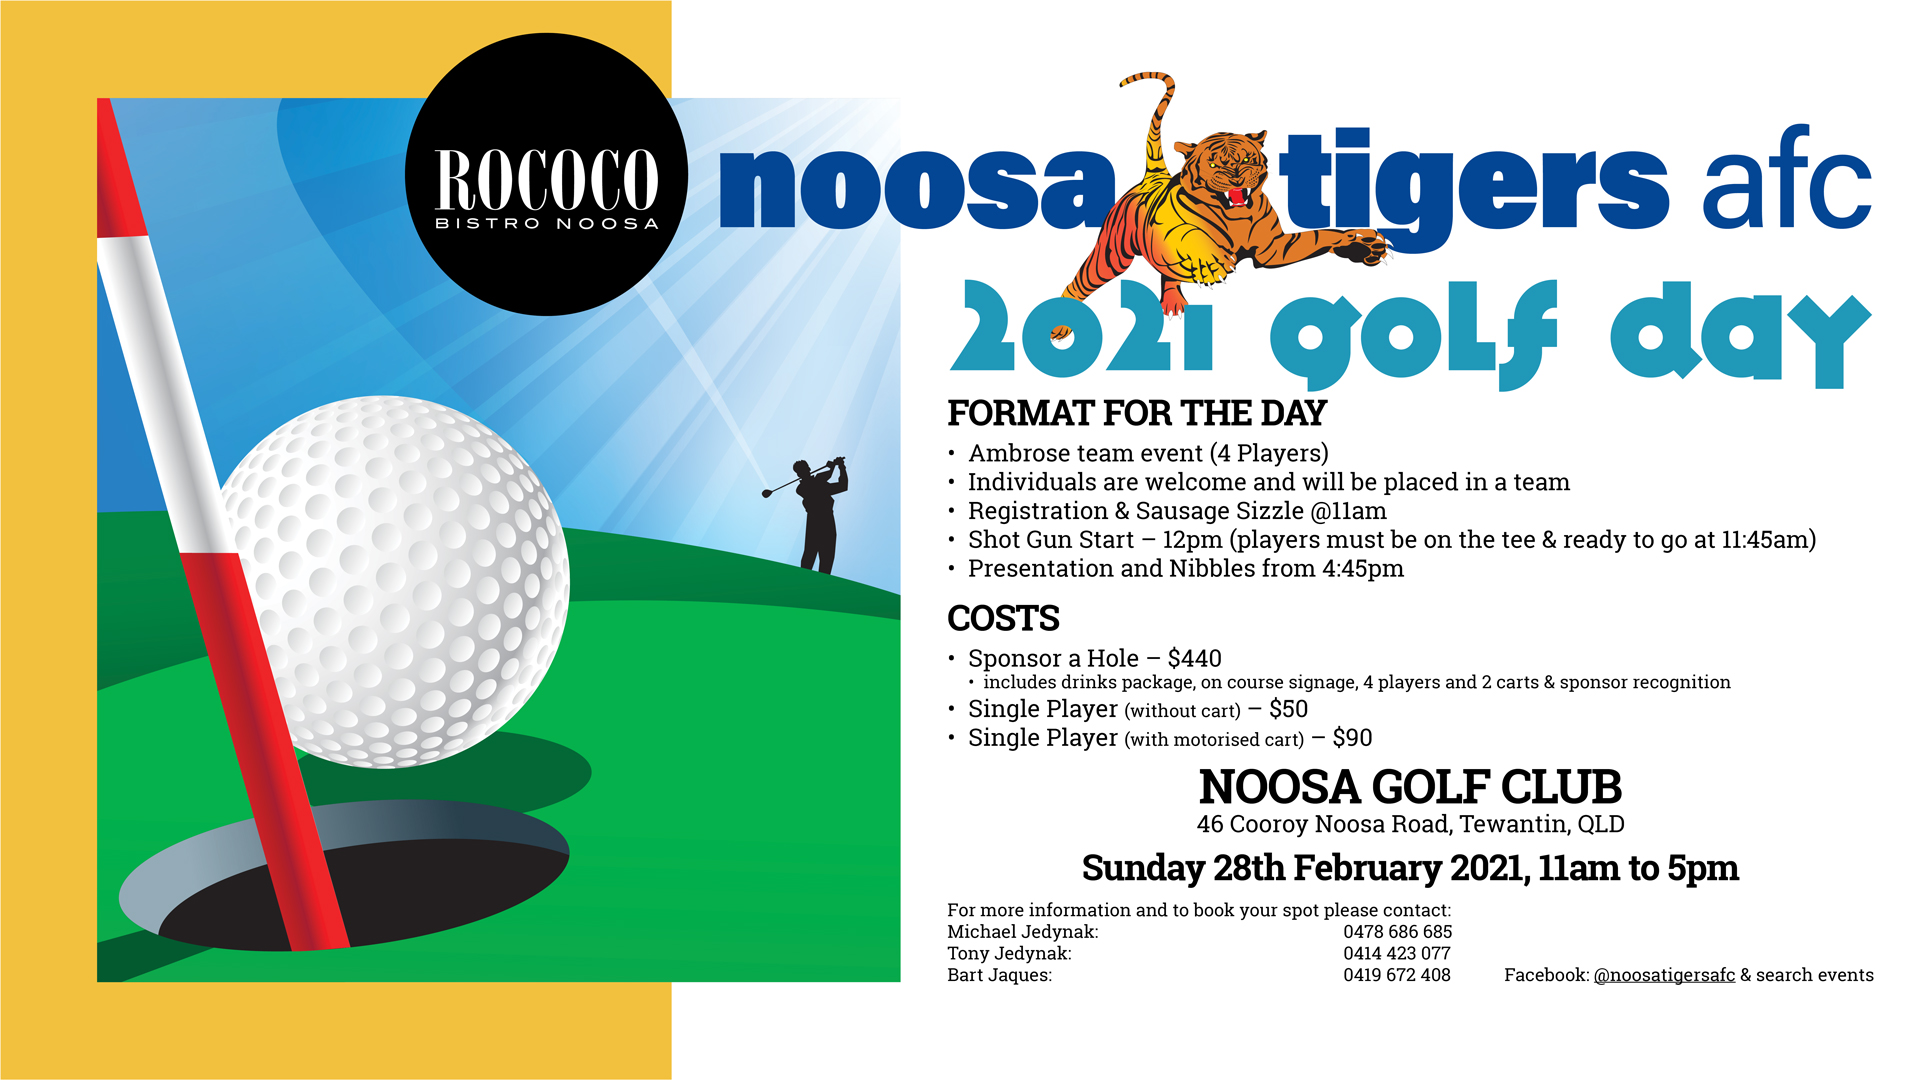 Noosa-tigers-2021-Golf-Day-2